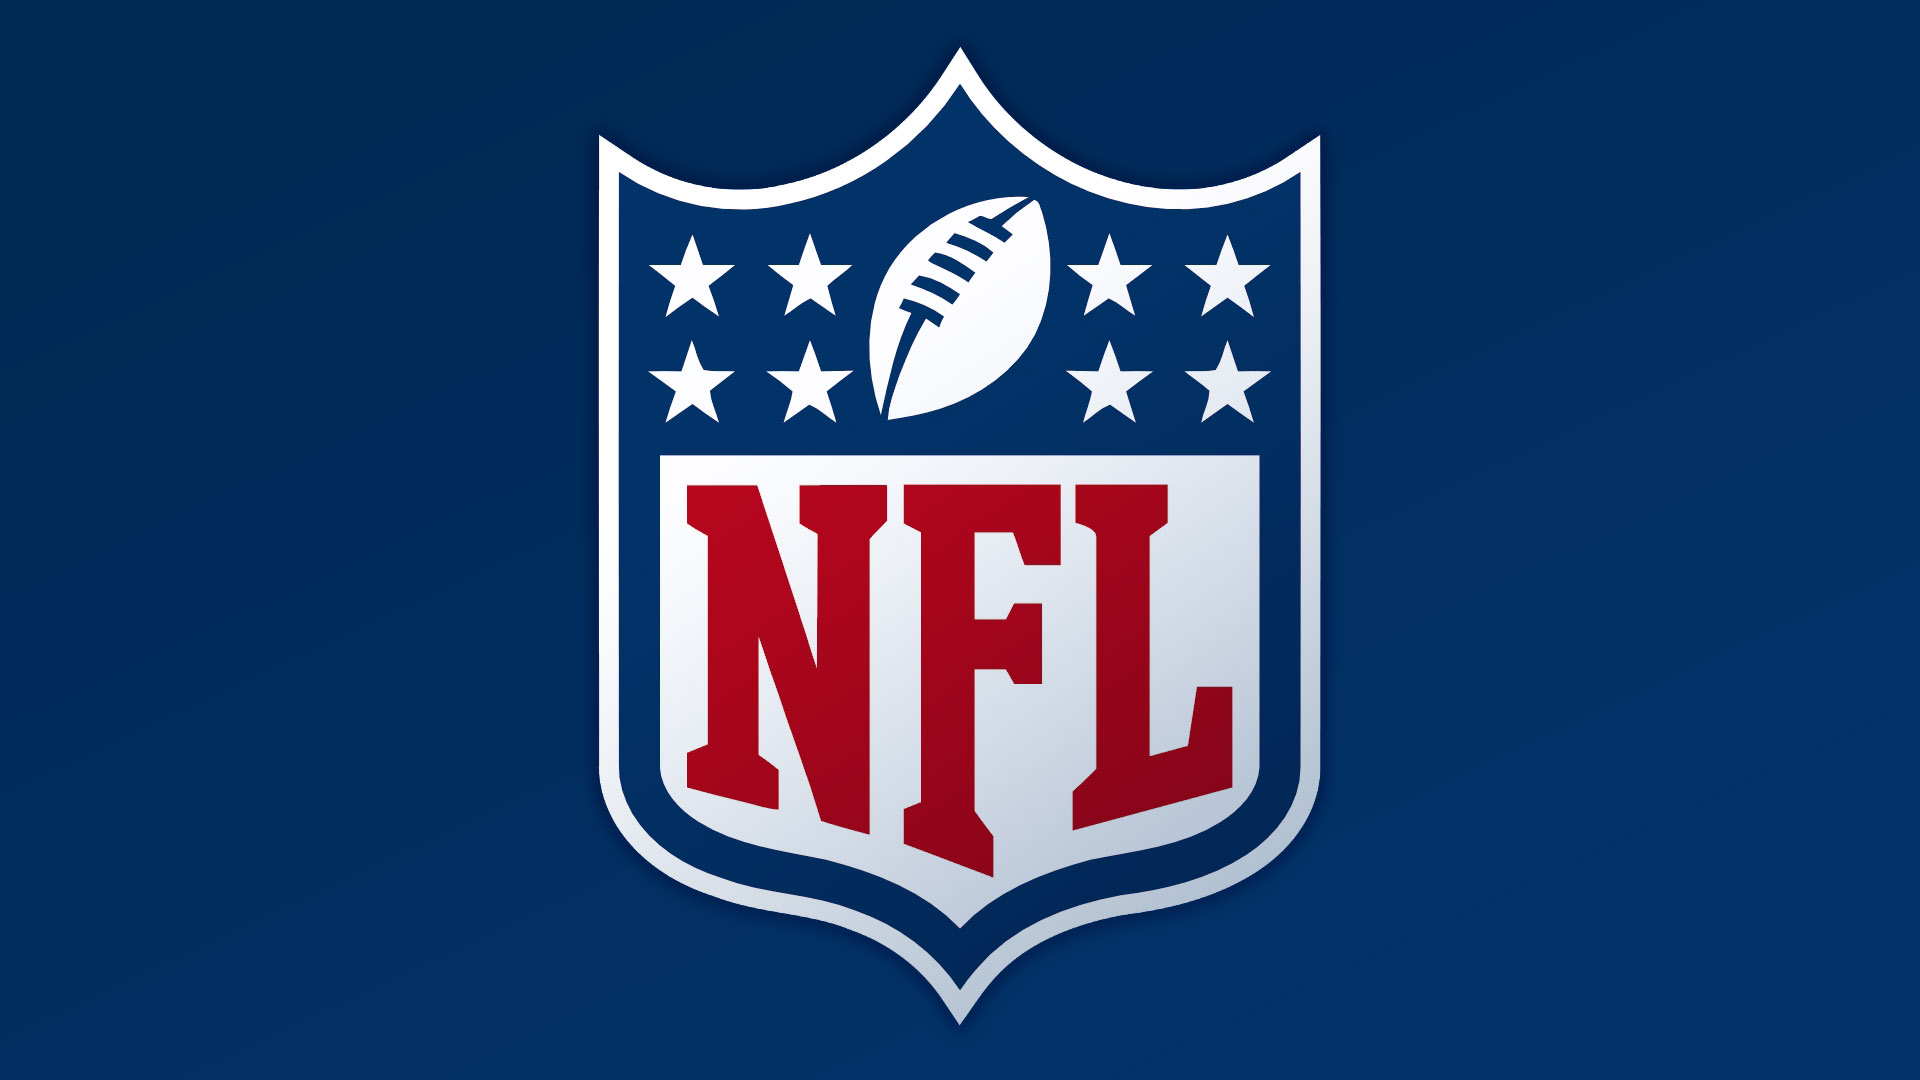 nfl wallpapers high quality download free